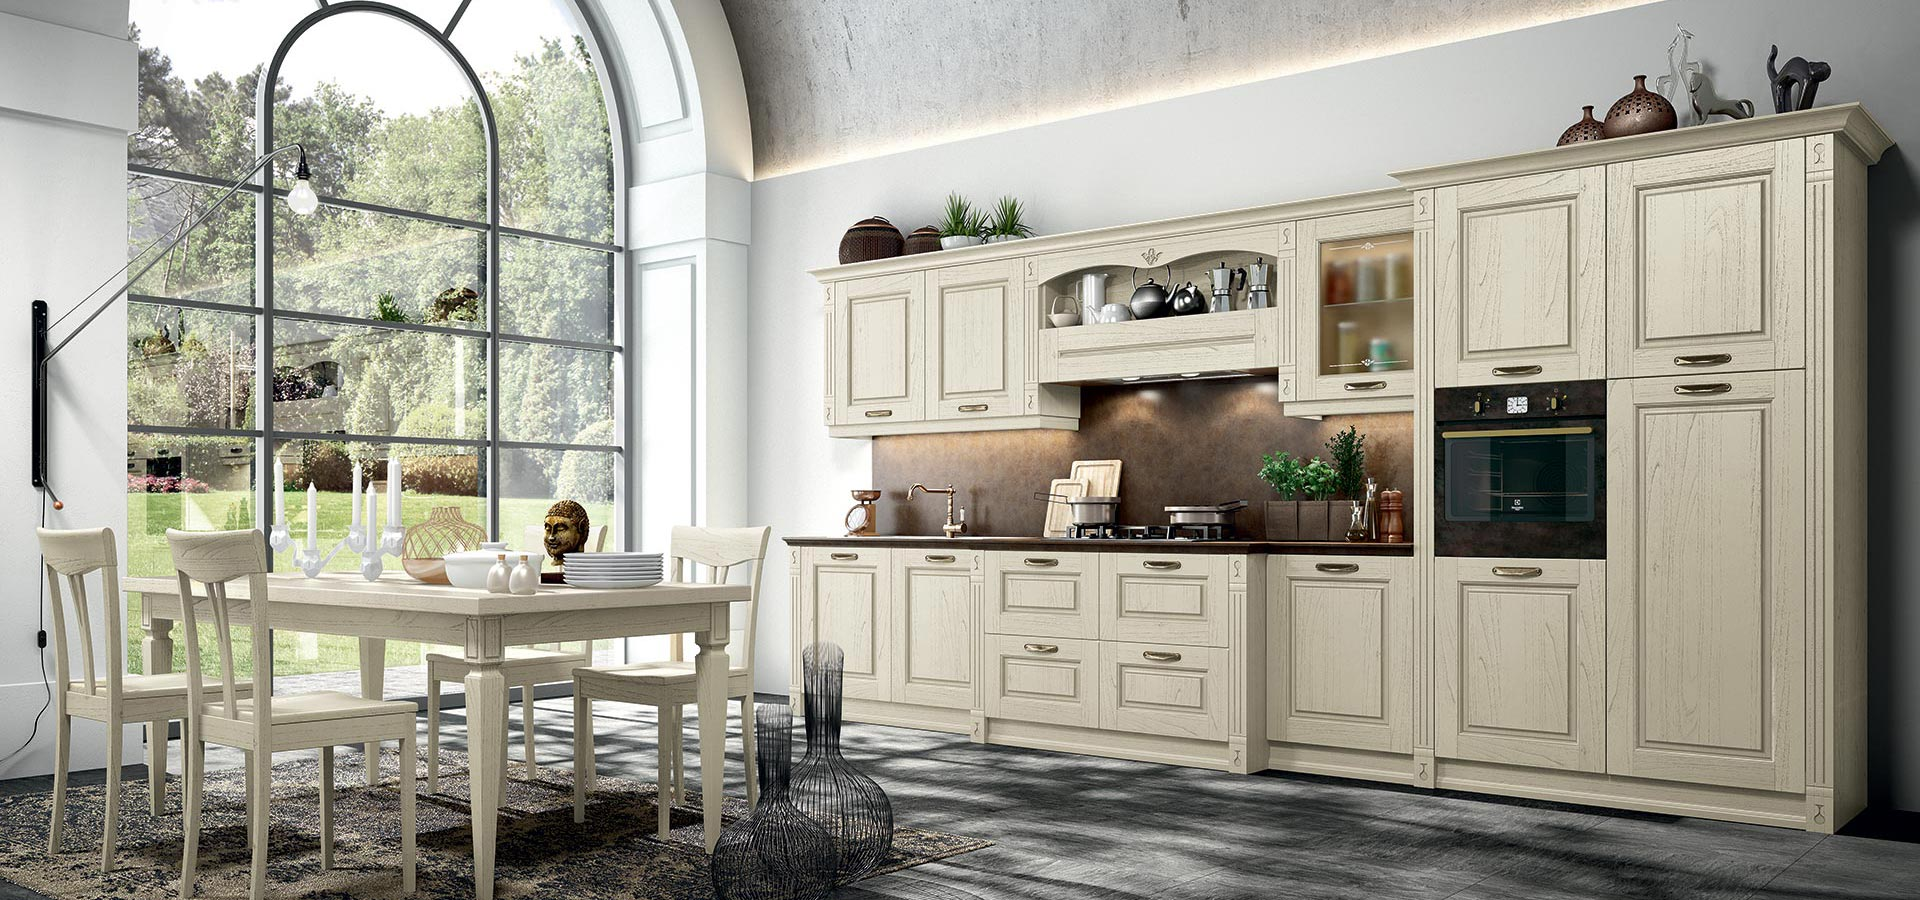 verona classical kitchen arredo3